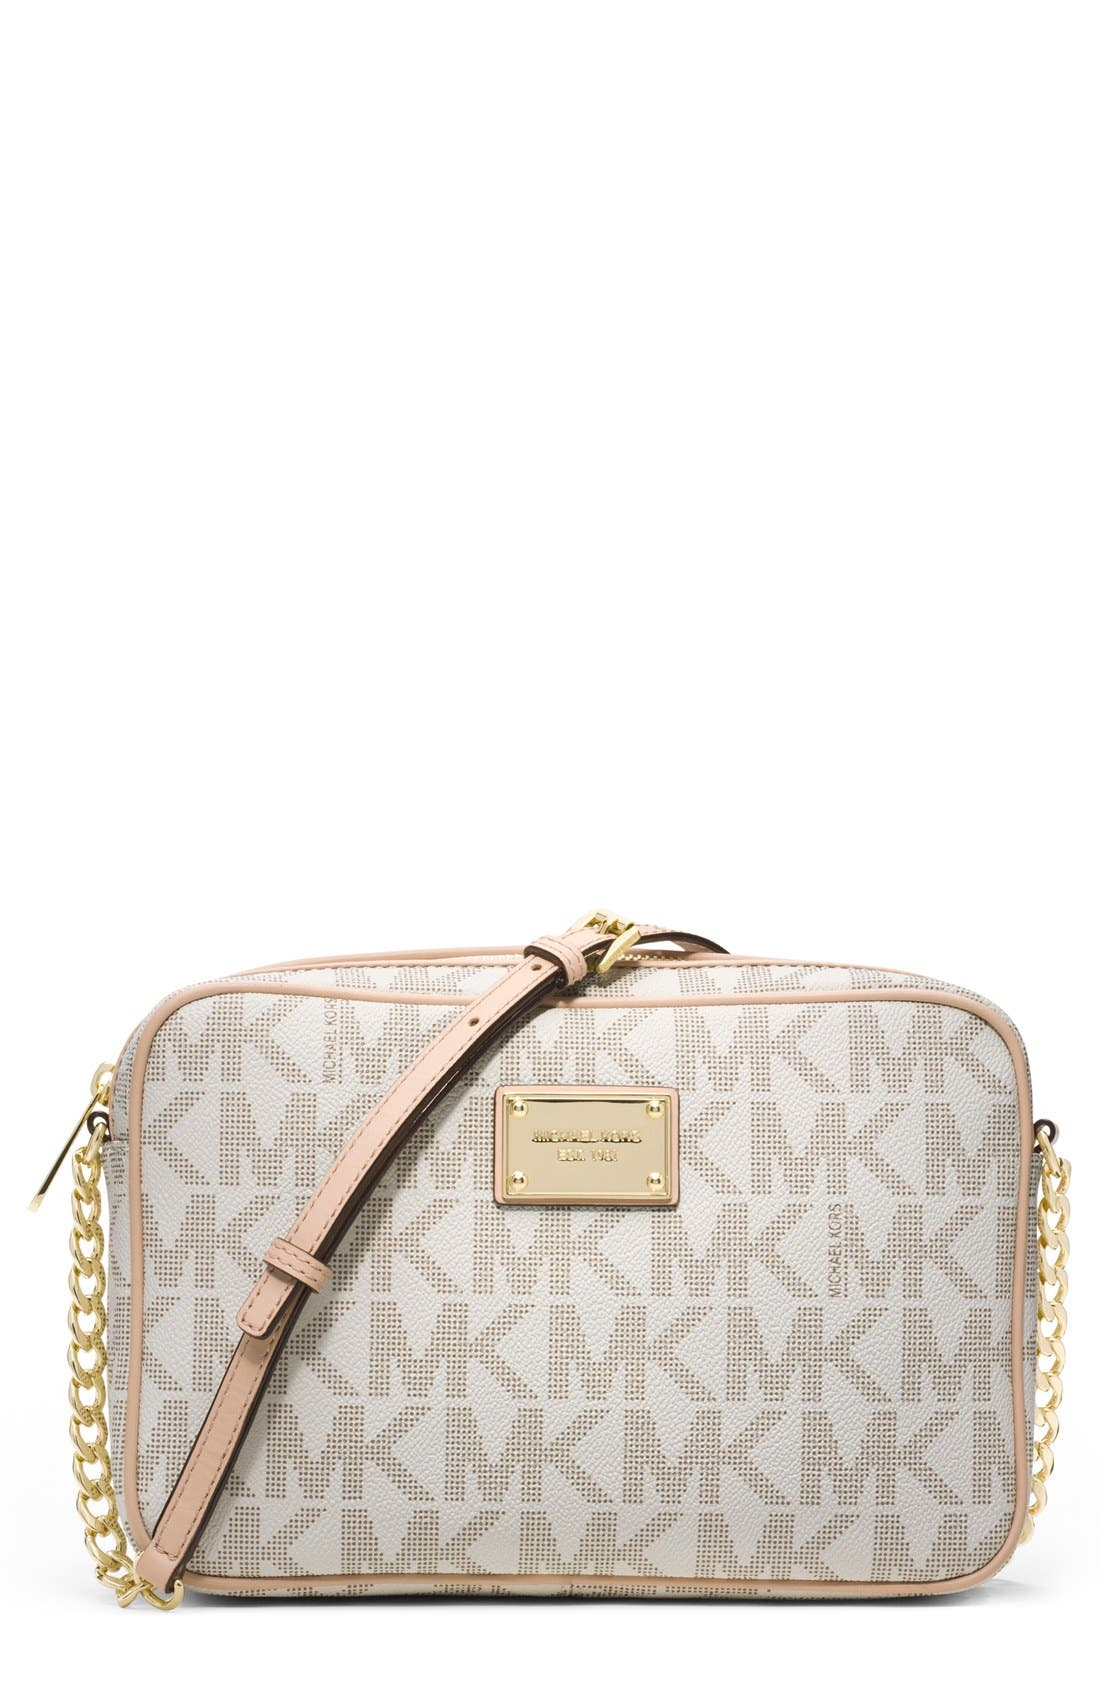 Main Image - MICHAEL Michael Kors 'Jet Set Large' East/West Crossbody